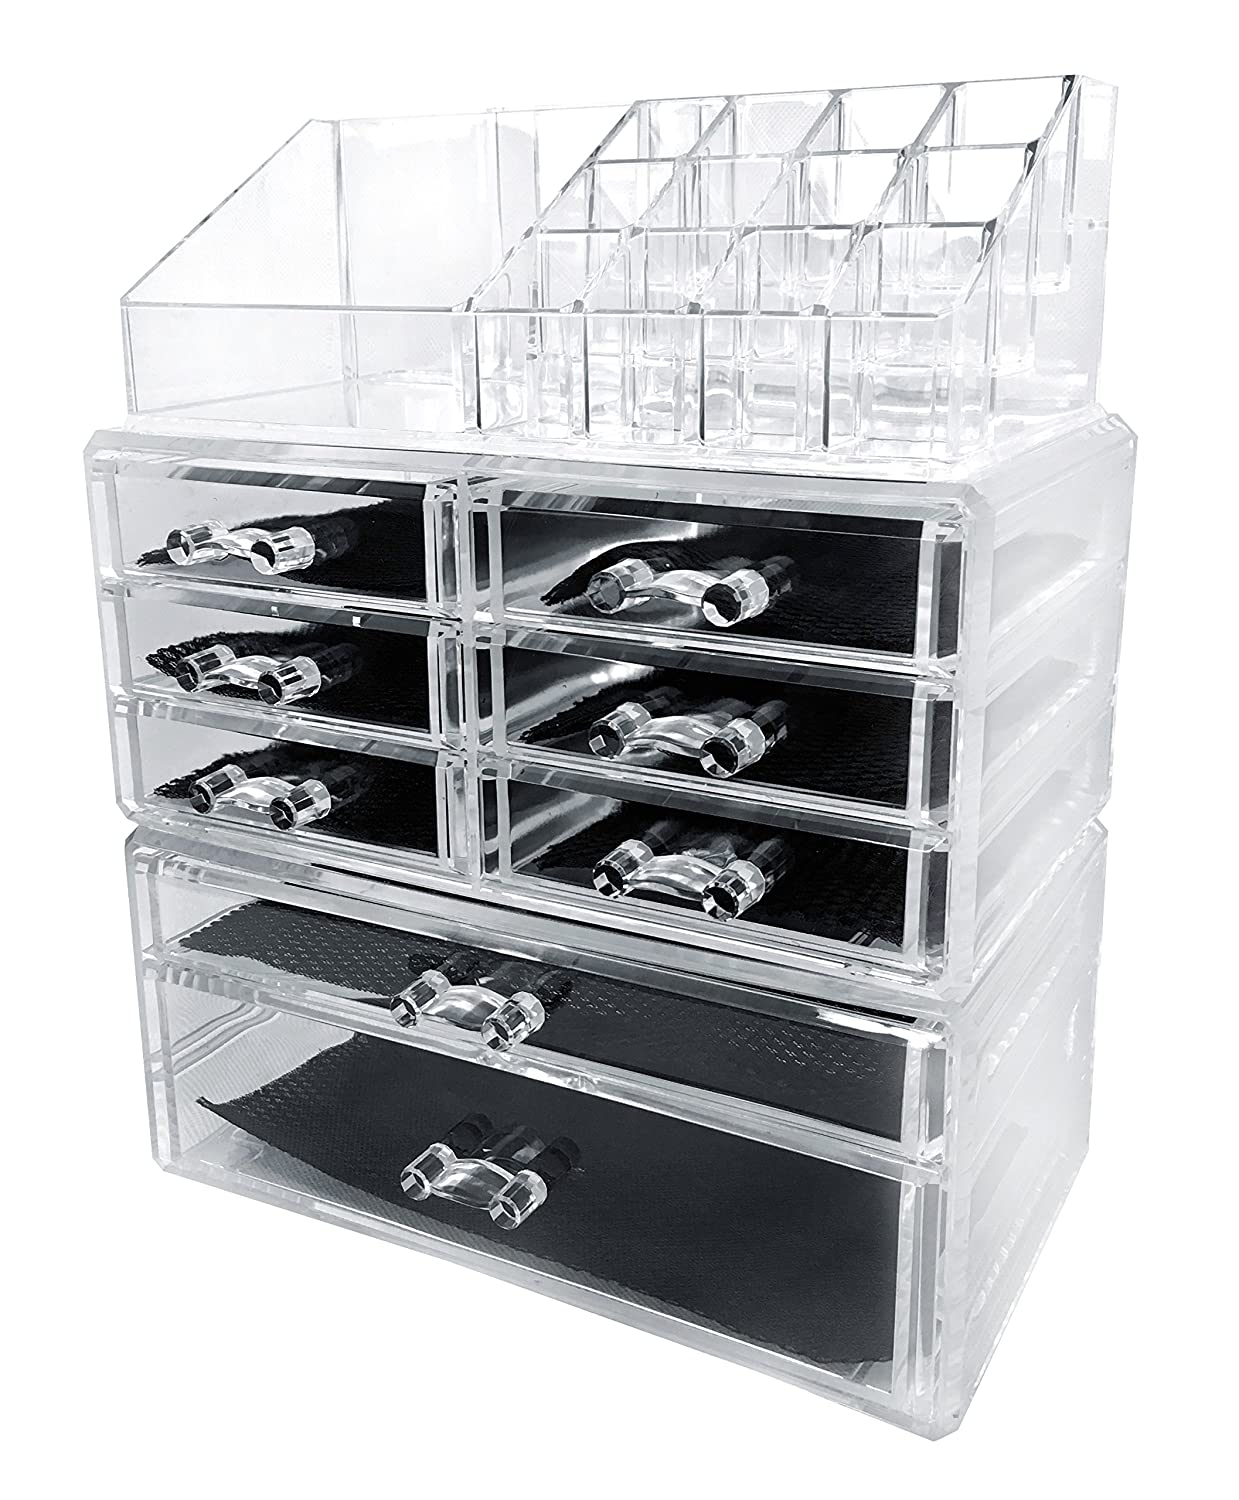 Amazon Com Sodynee Acrylic Makeup Cosmetic Organizer Storage Drawers Display Boxes Case Three Pieces Set Home Kitchen